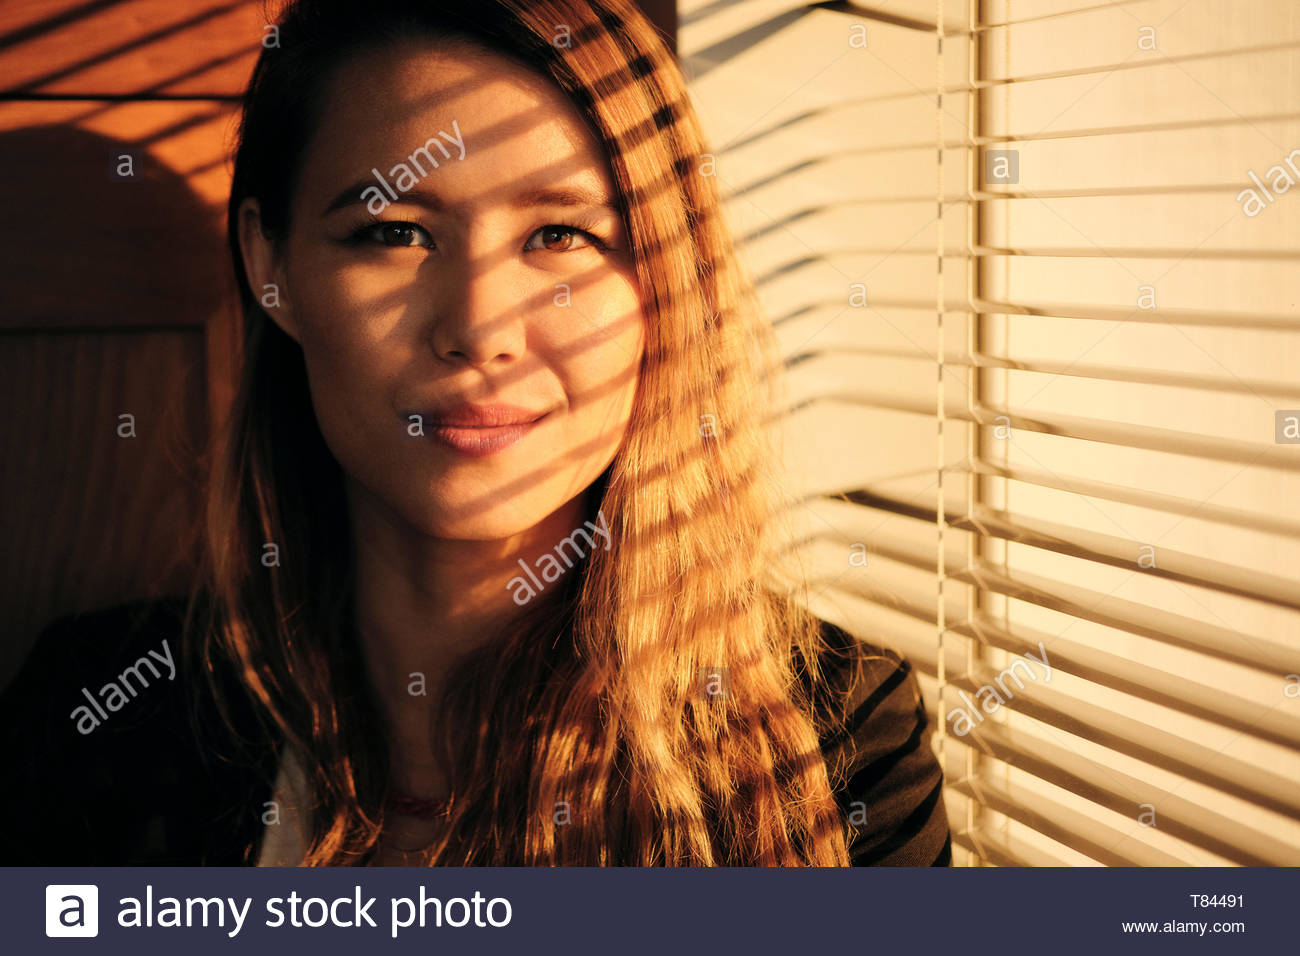 Young woman by window at sunset Stock Photo